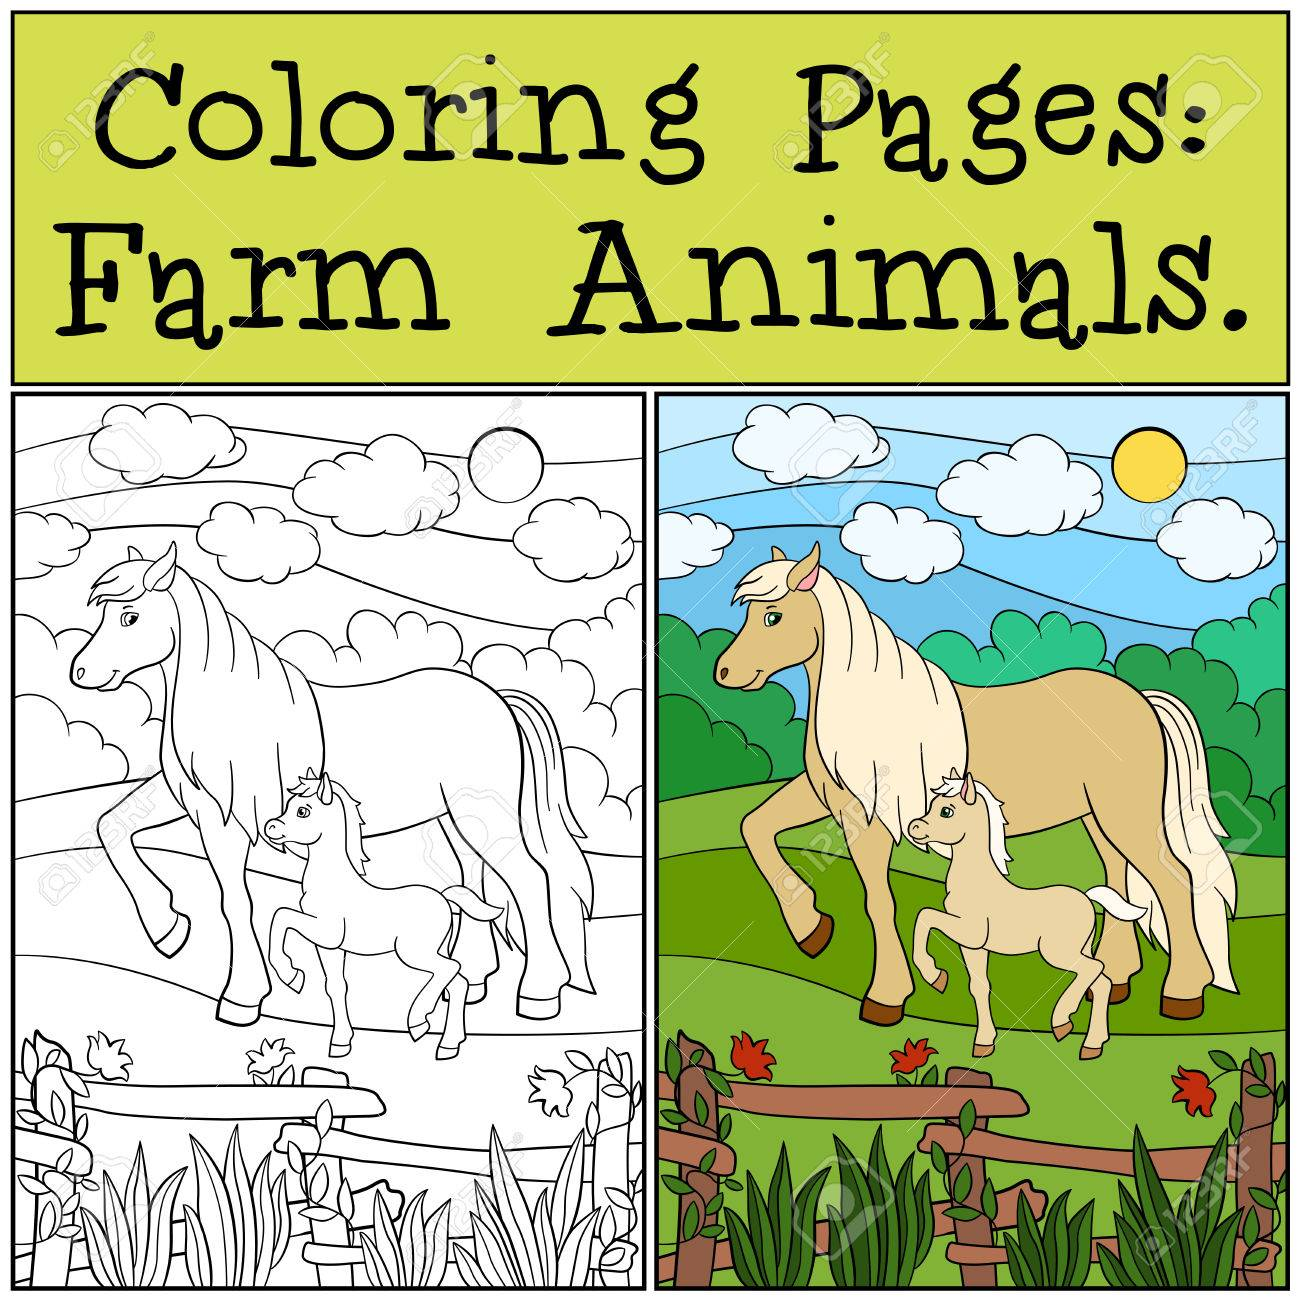 Coloring Pages: Farm Animals. Mother Horse Walks With Her Little ...